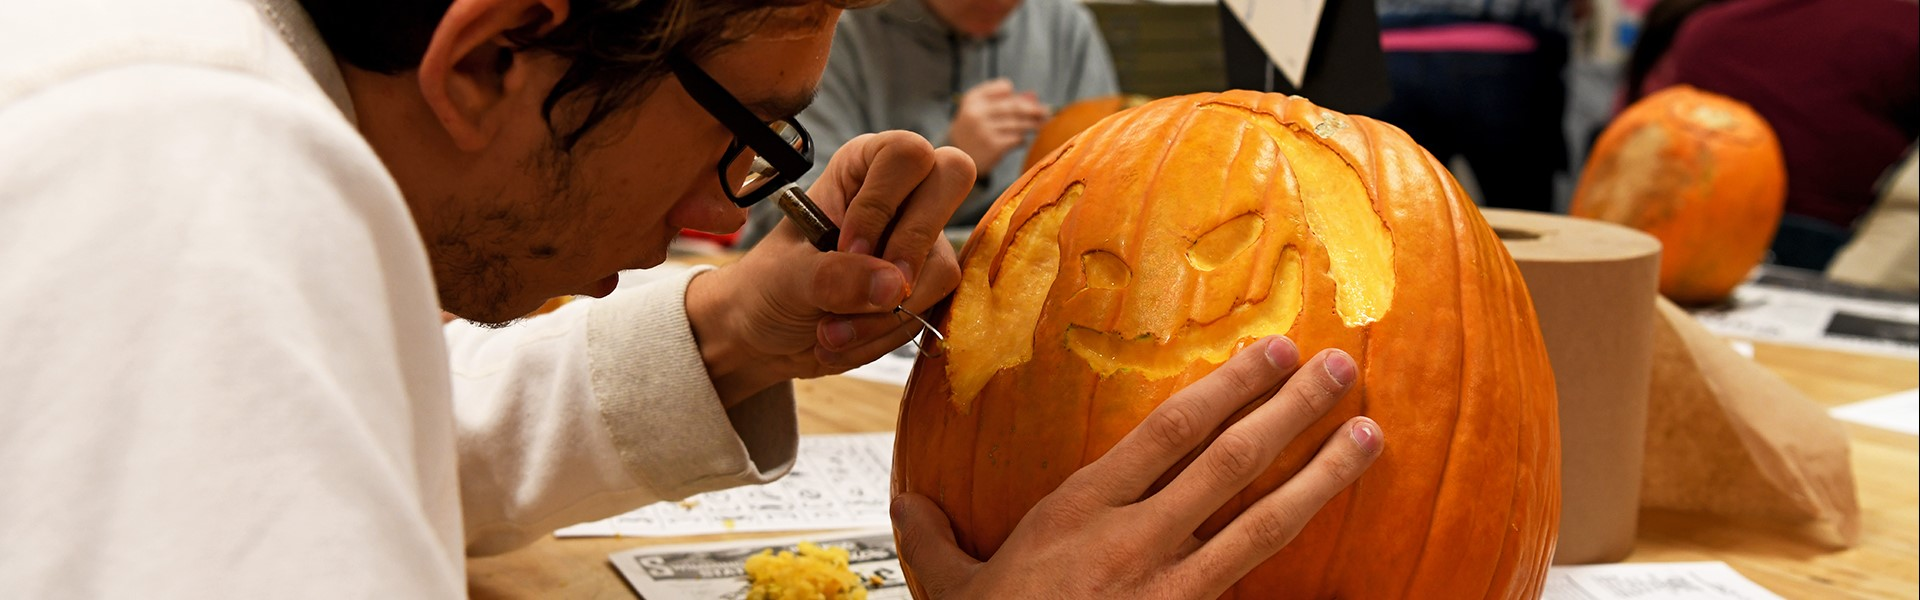 Pumpkin carving 10/18